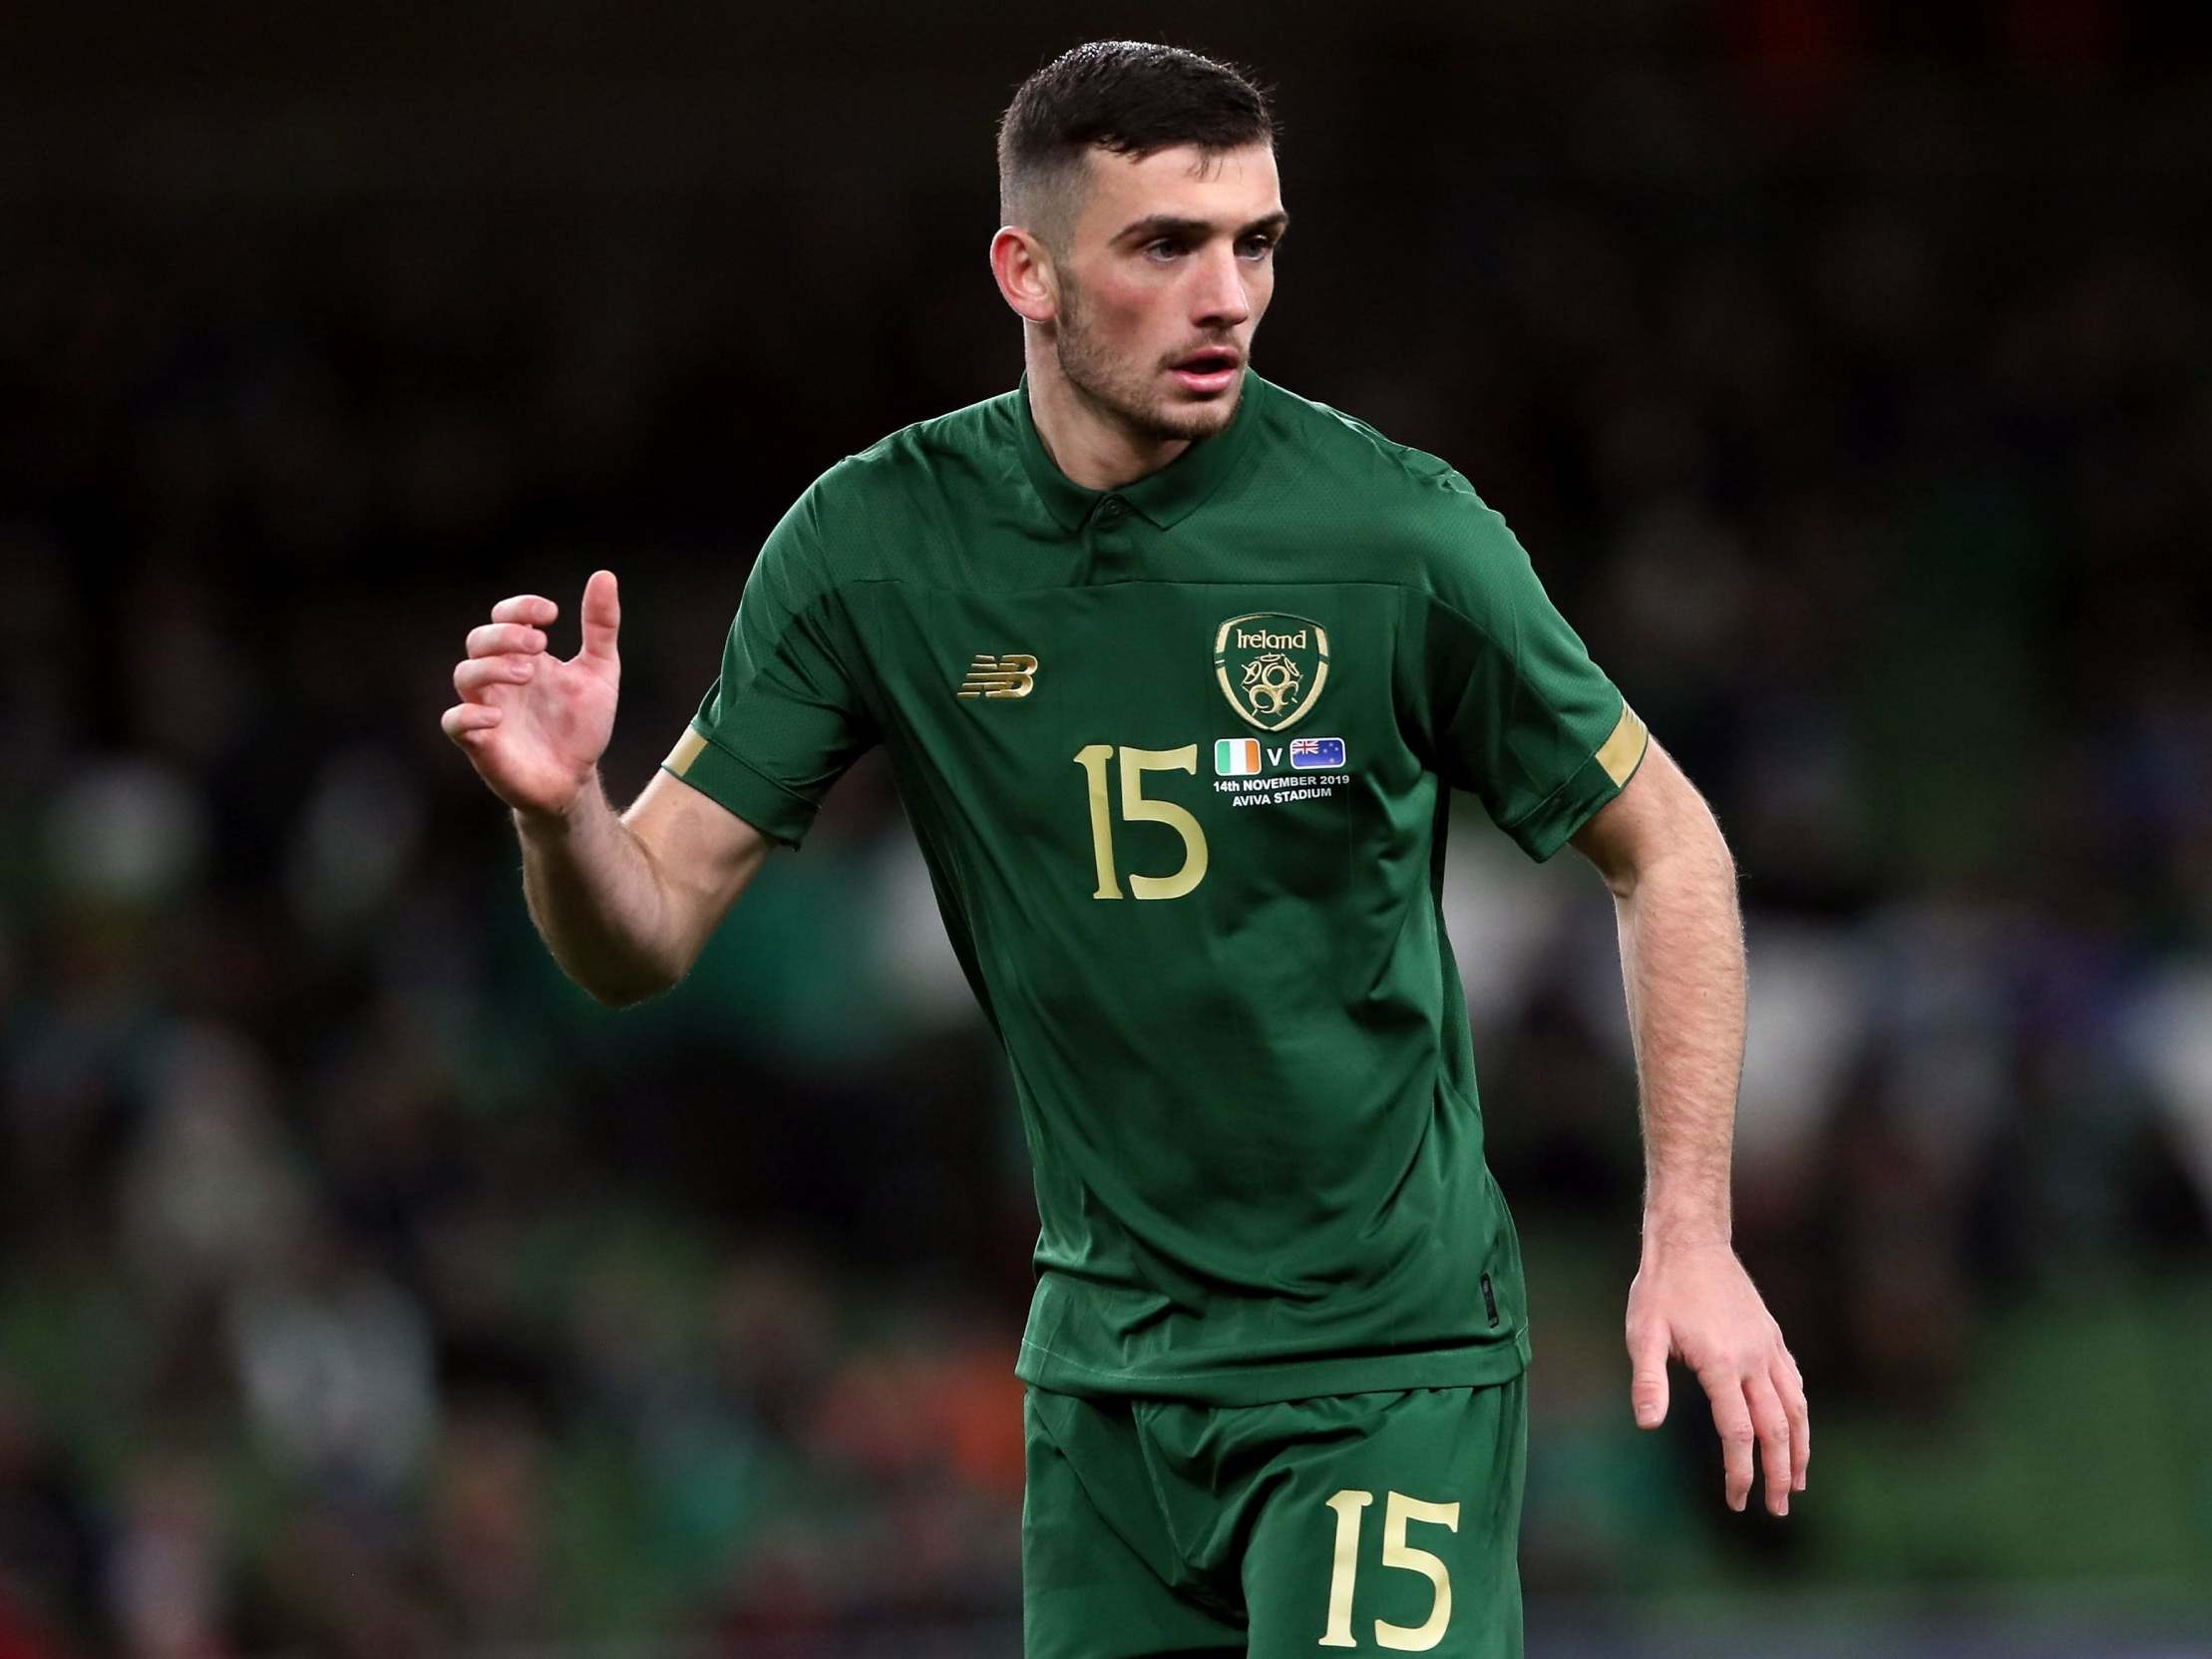 Lift-off for Troy Parrott as Republic of Ireland secure comeback win…